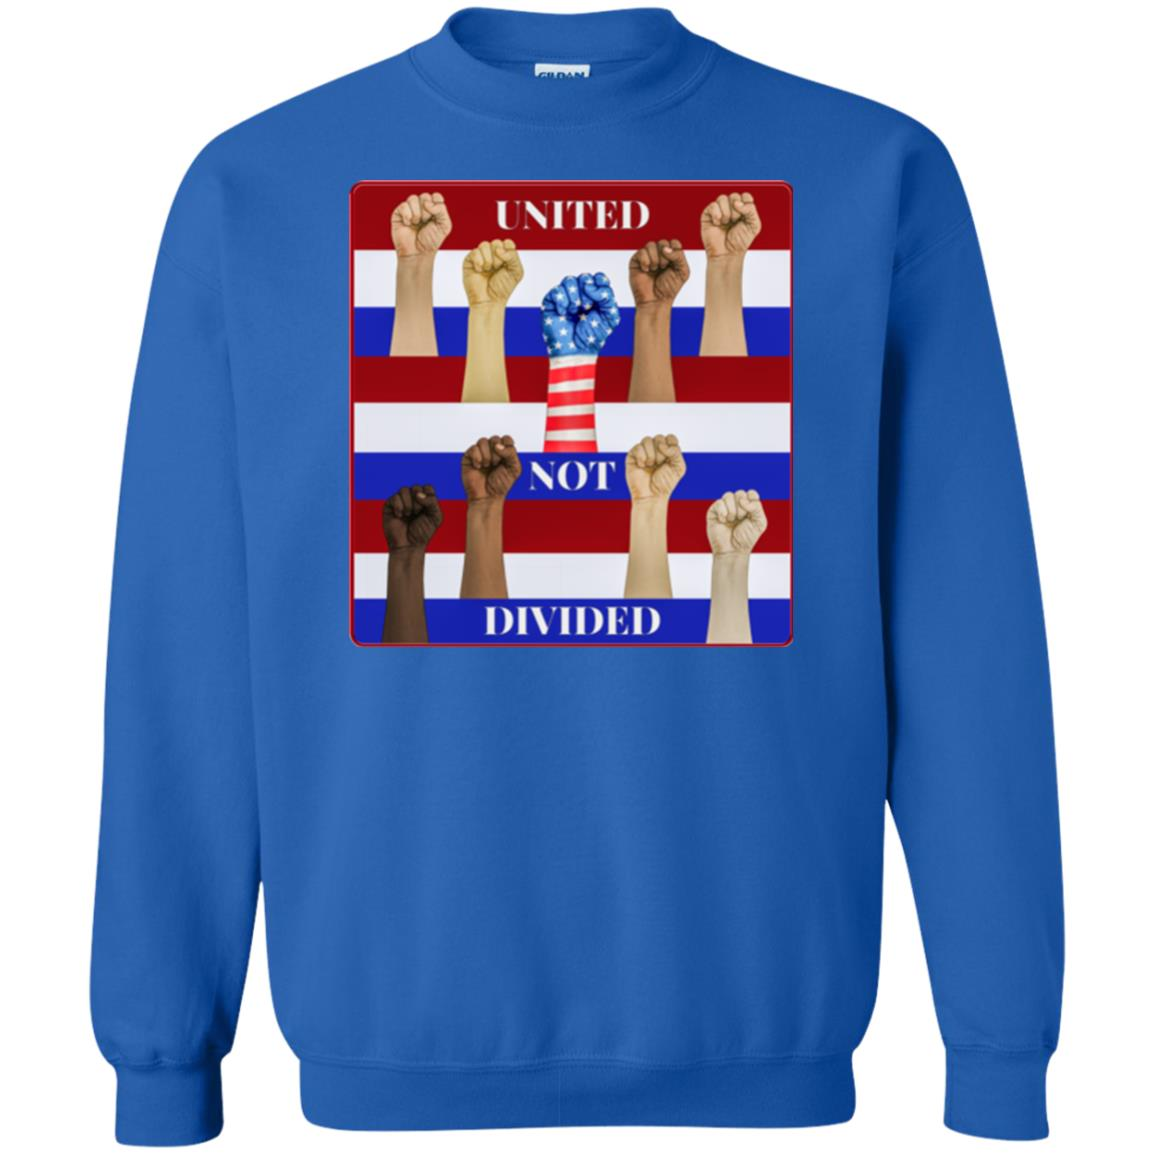 united not divided - Men's Crew Neck Sweatshirt